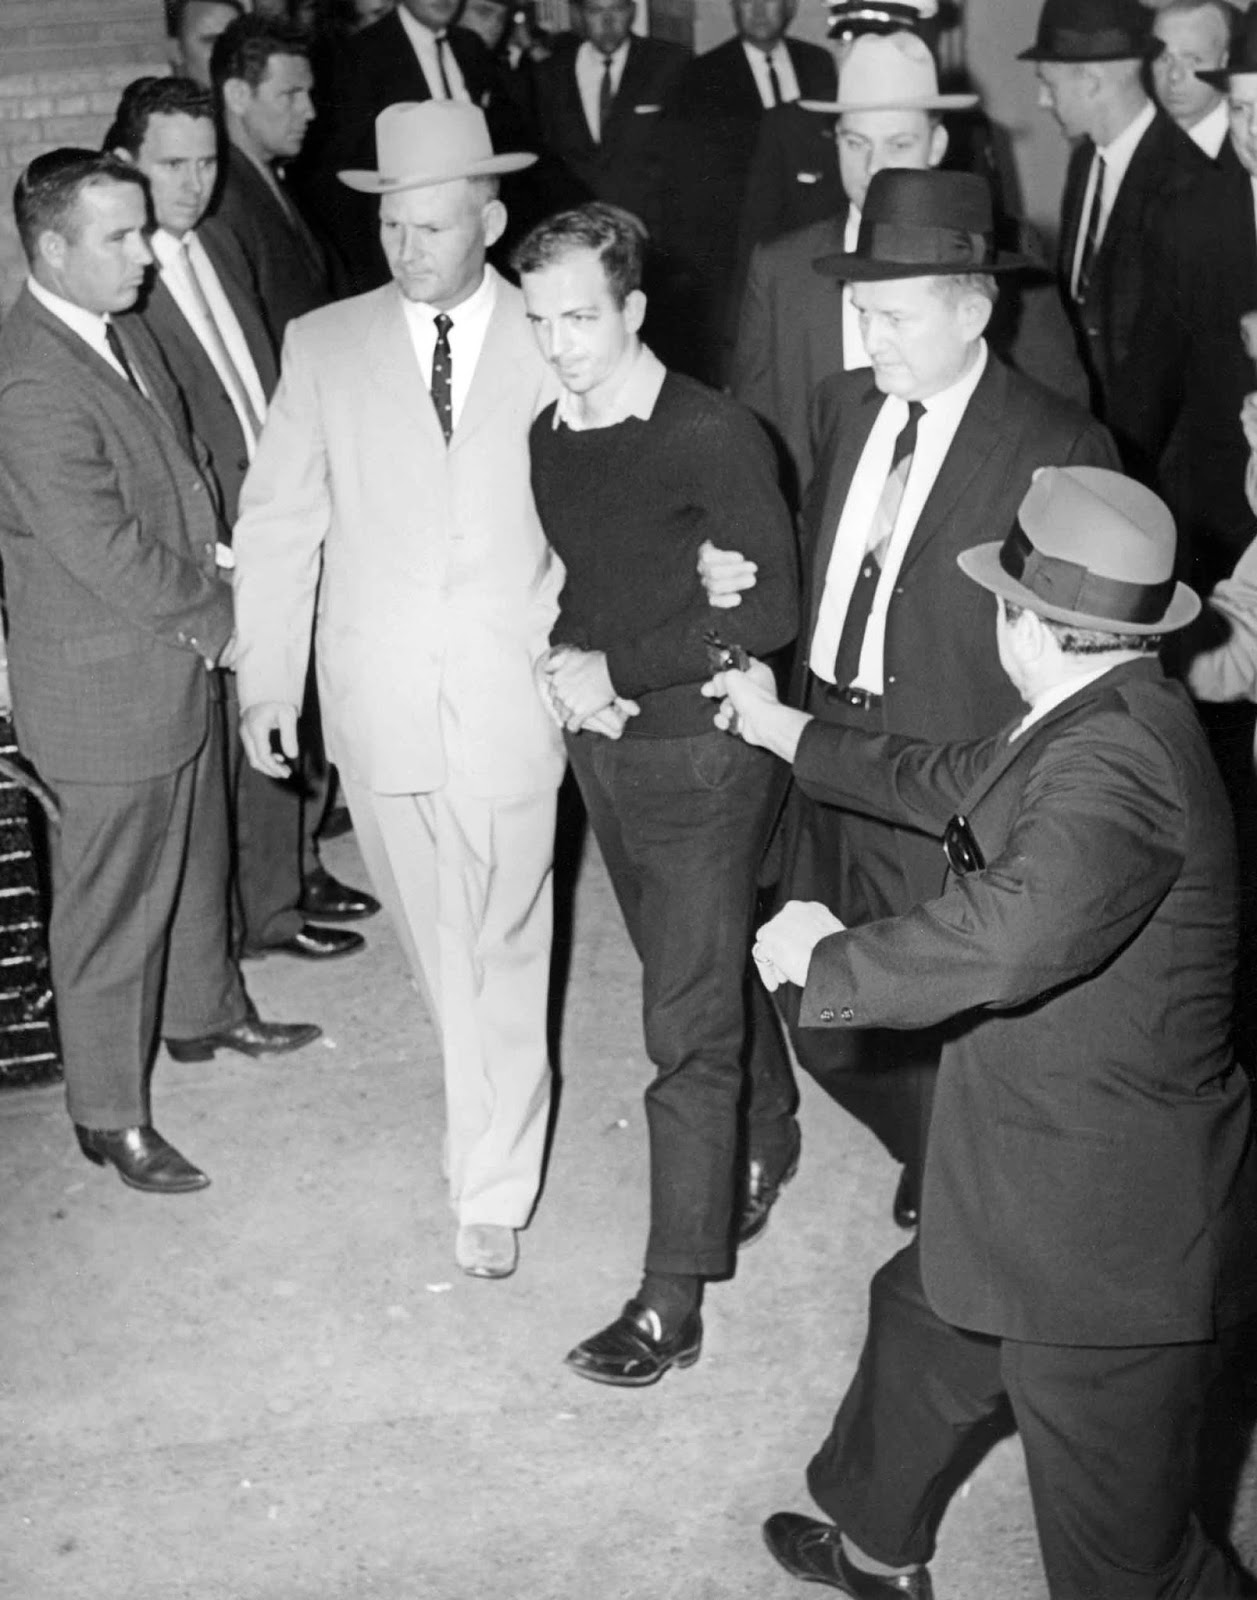 Jack Ruby ready to shoot at Lee Harvey Oswald, as he was escorted to the Dallas city jail via the underground garage of the Dallas police headquarters.